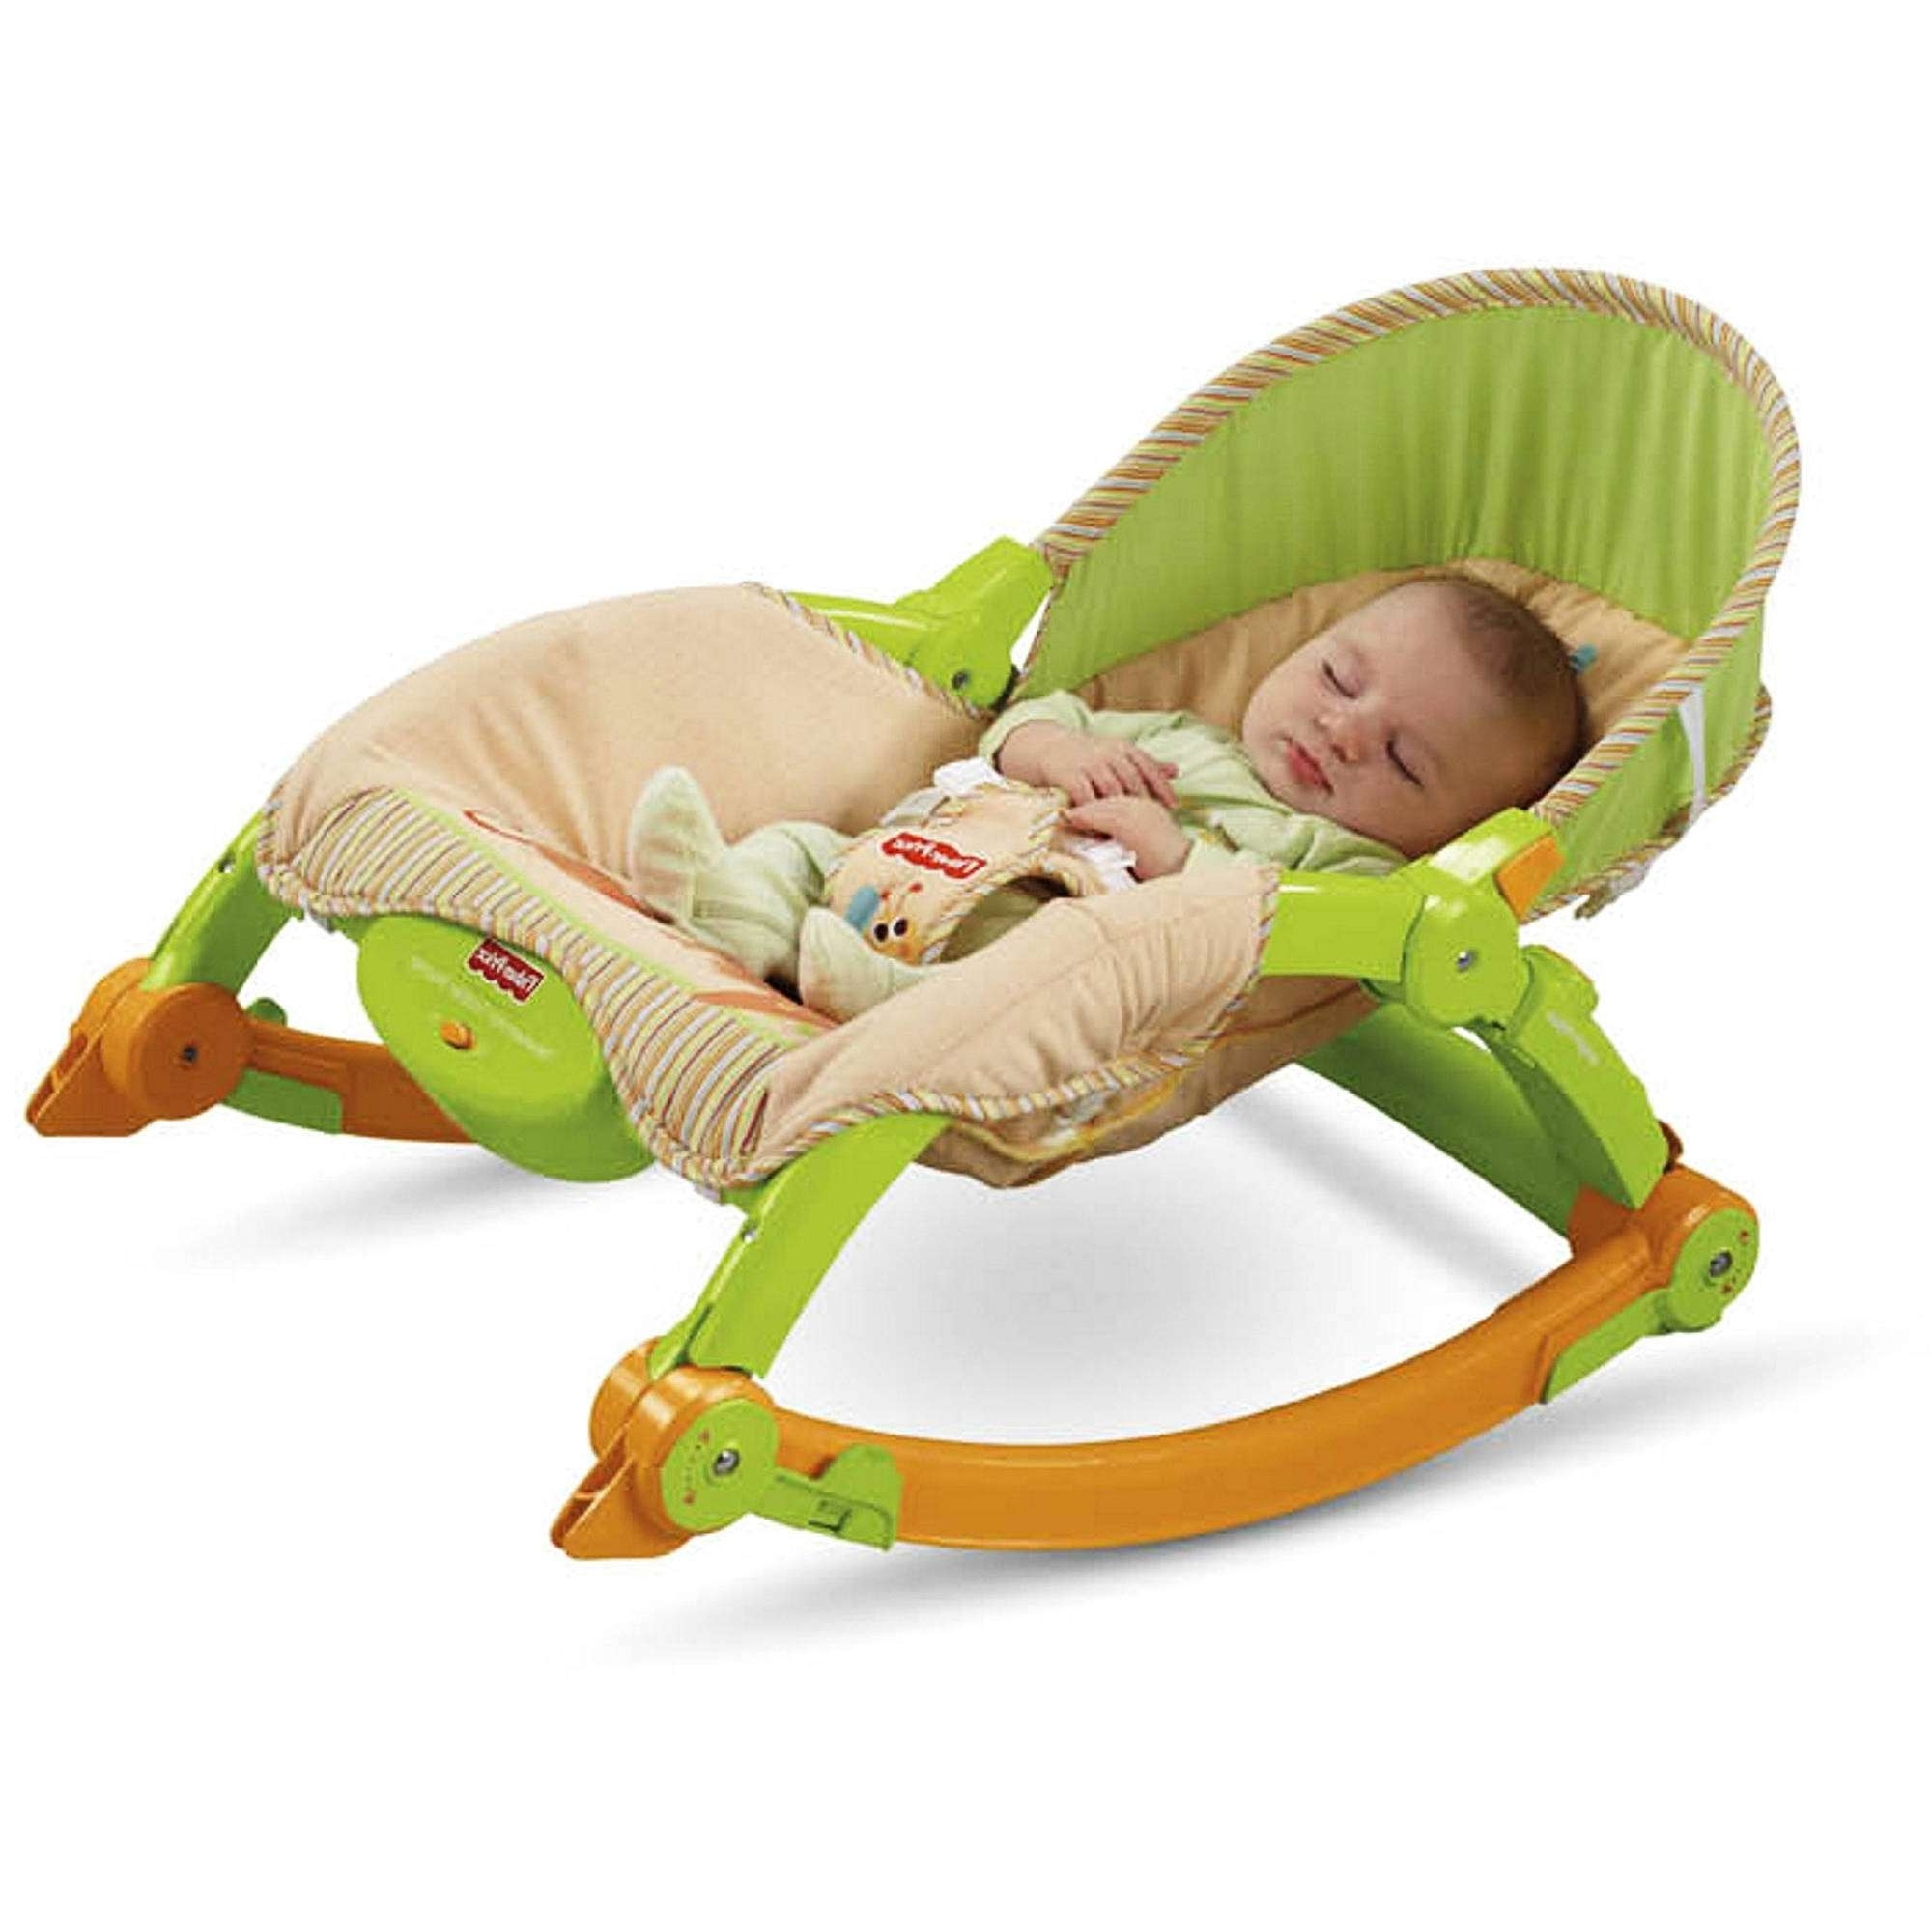 2018 Rocking Chairs For Babies With Regard To Baby Rocking Chair Walmart Inspirational Fisher Price Newborn To (View 2 of 15)